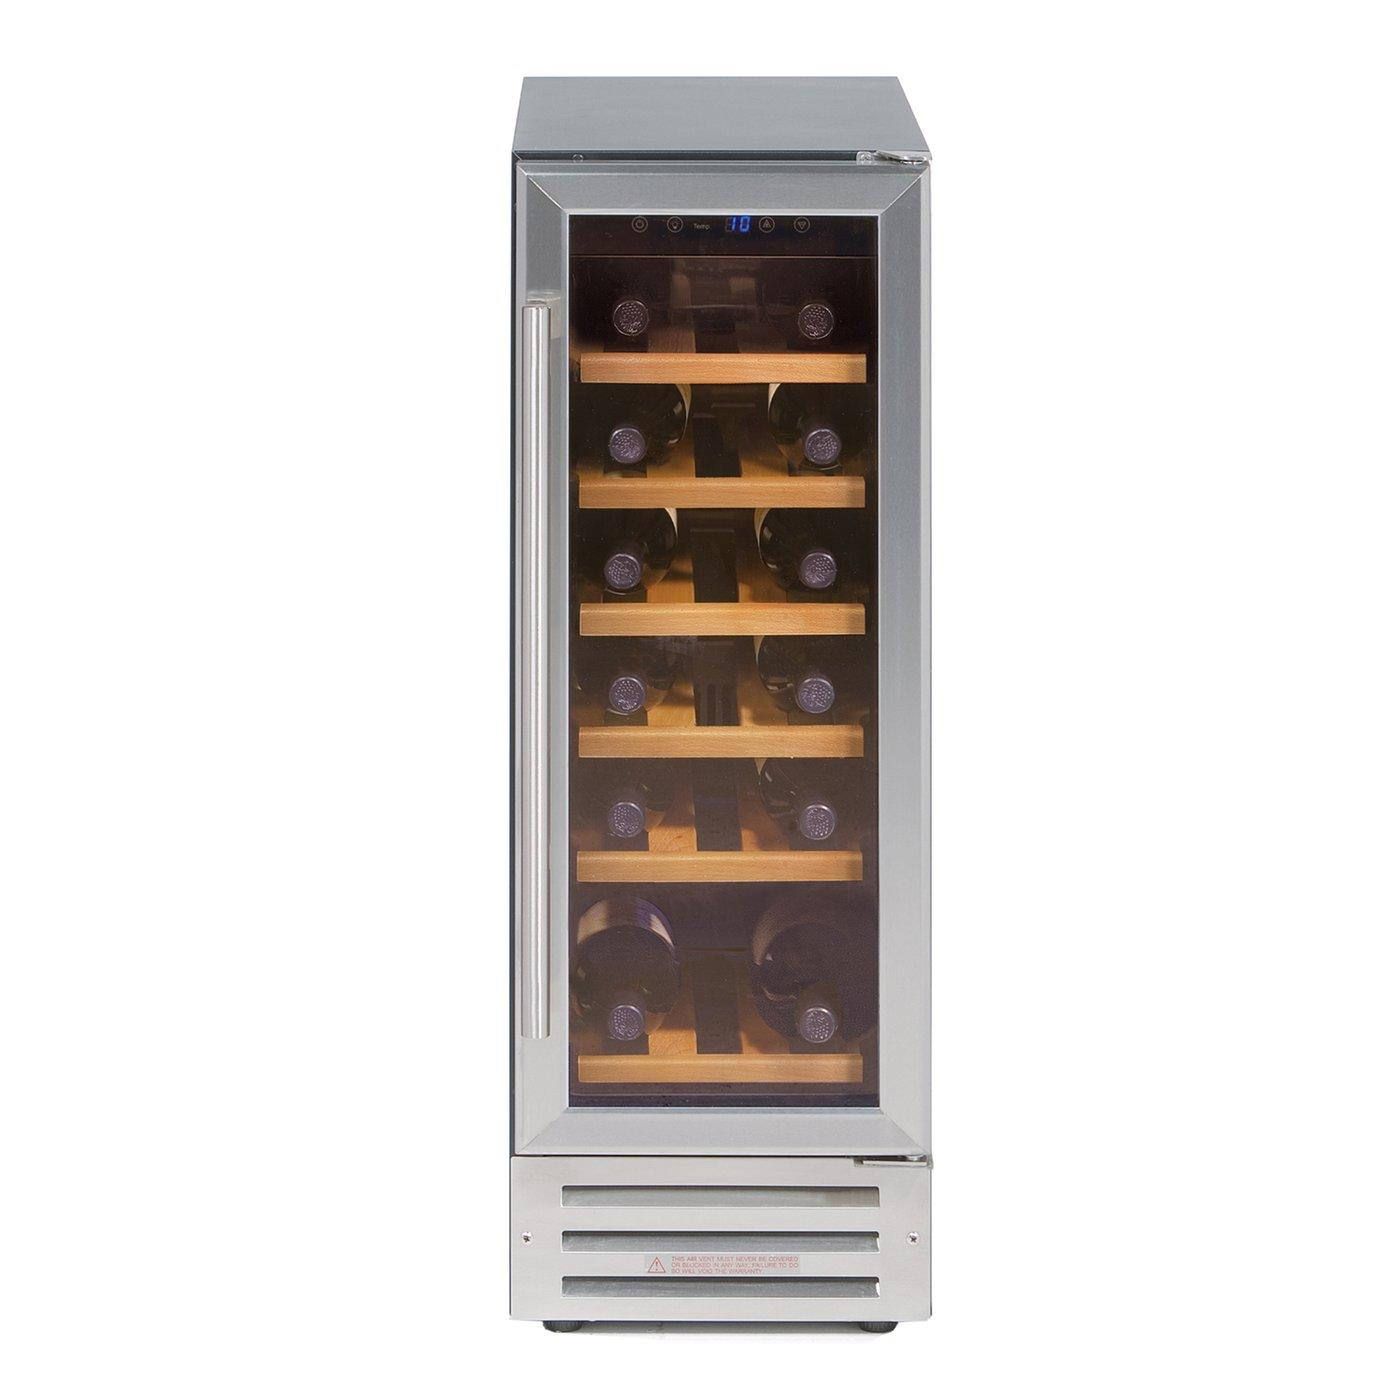 Image of 300WC Built-In 18 Bottle Wine Cooler | Stainless Steel